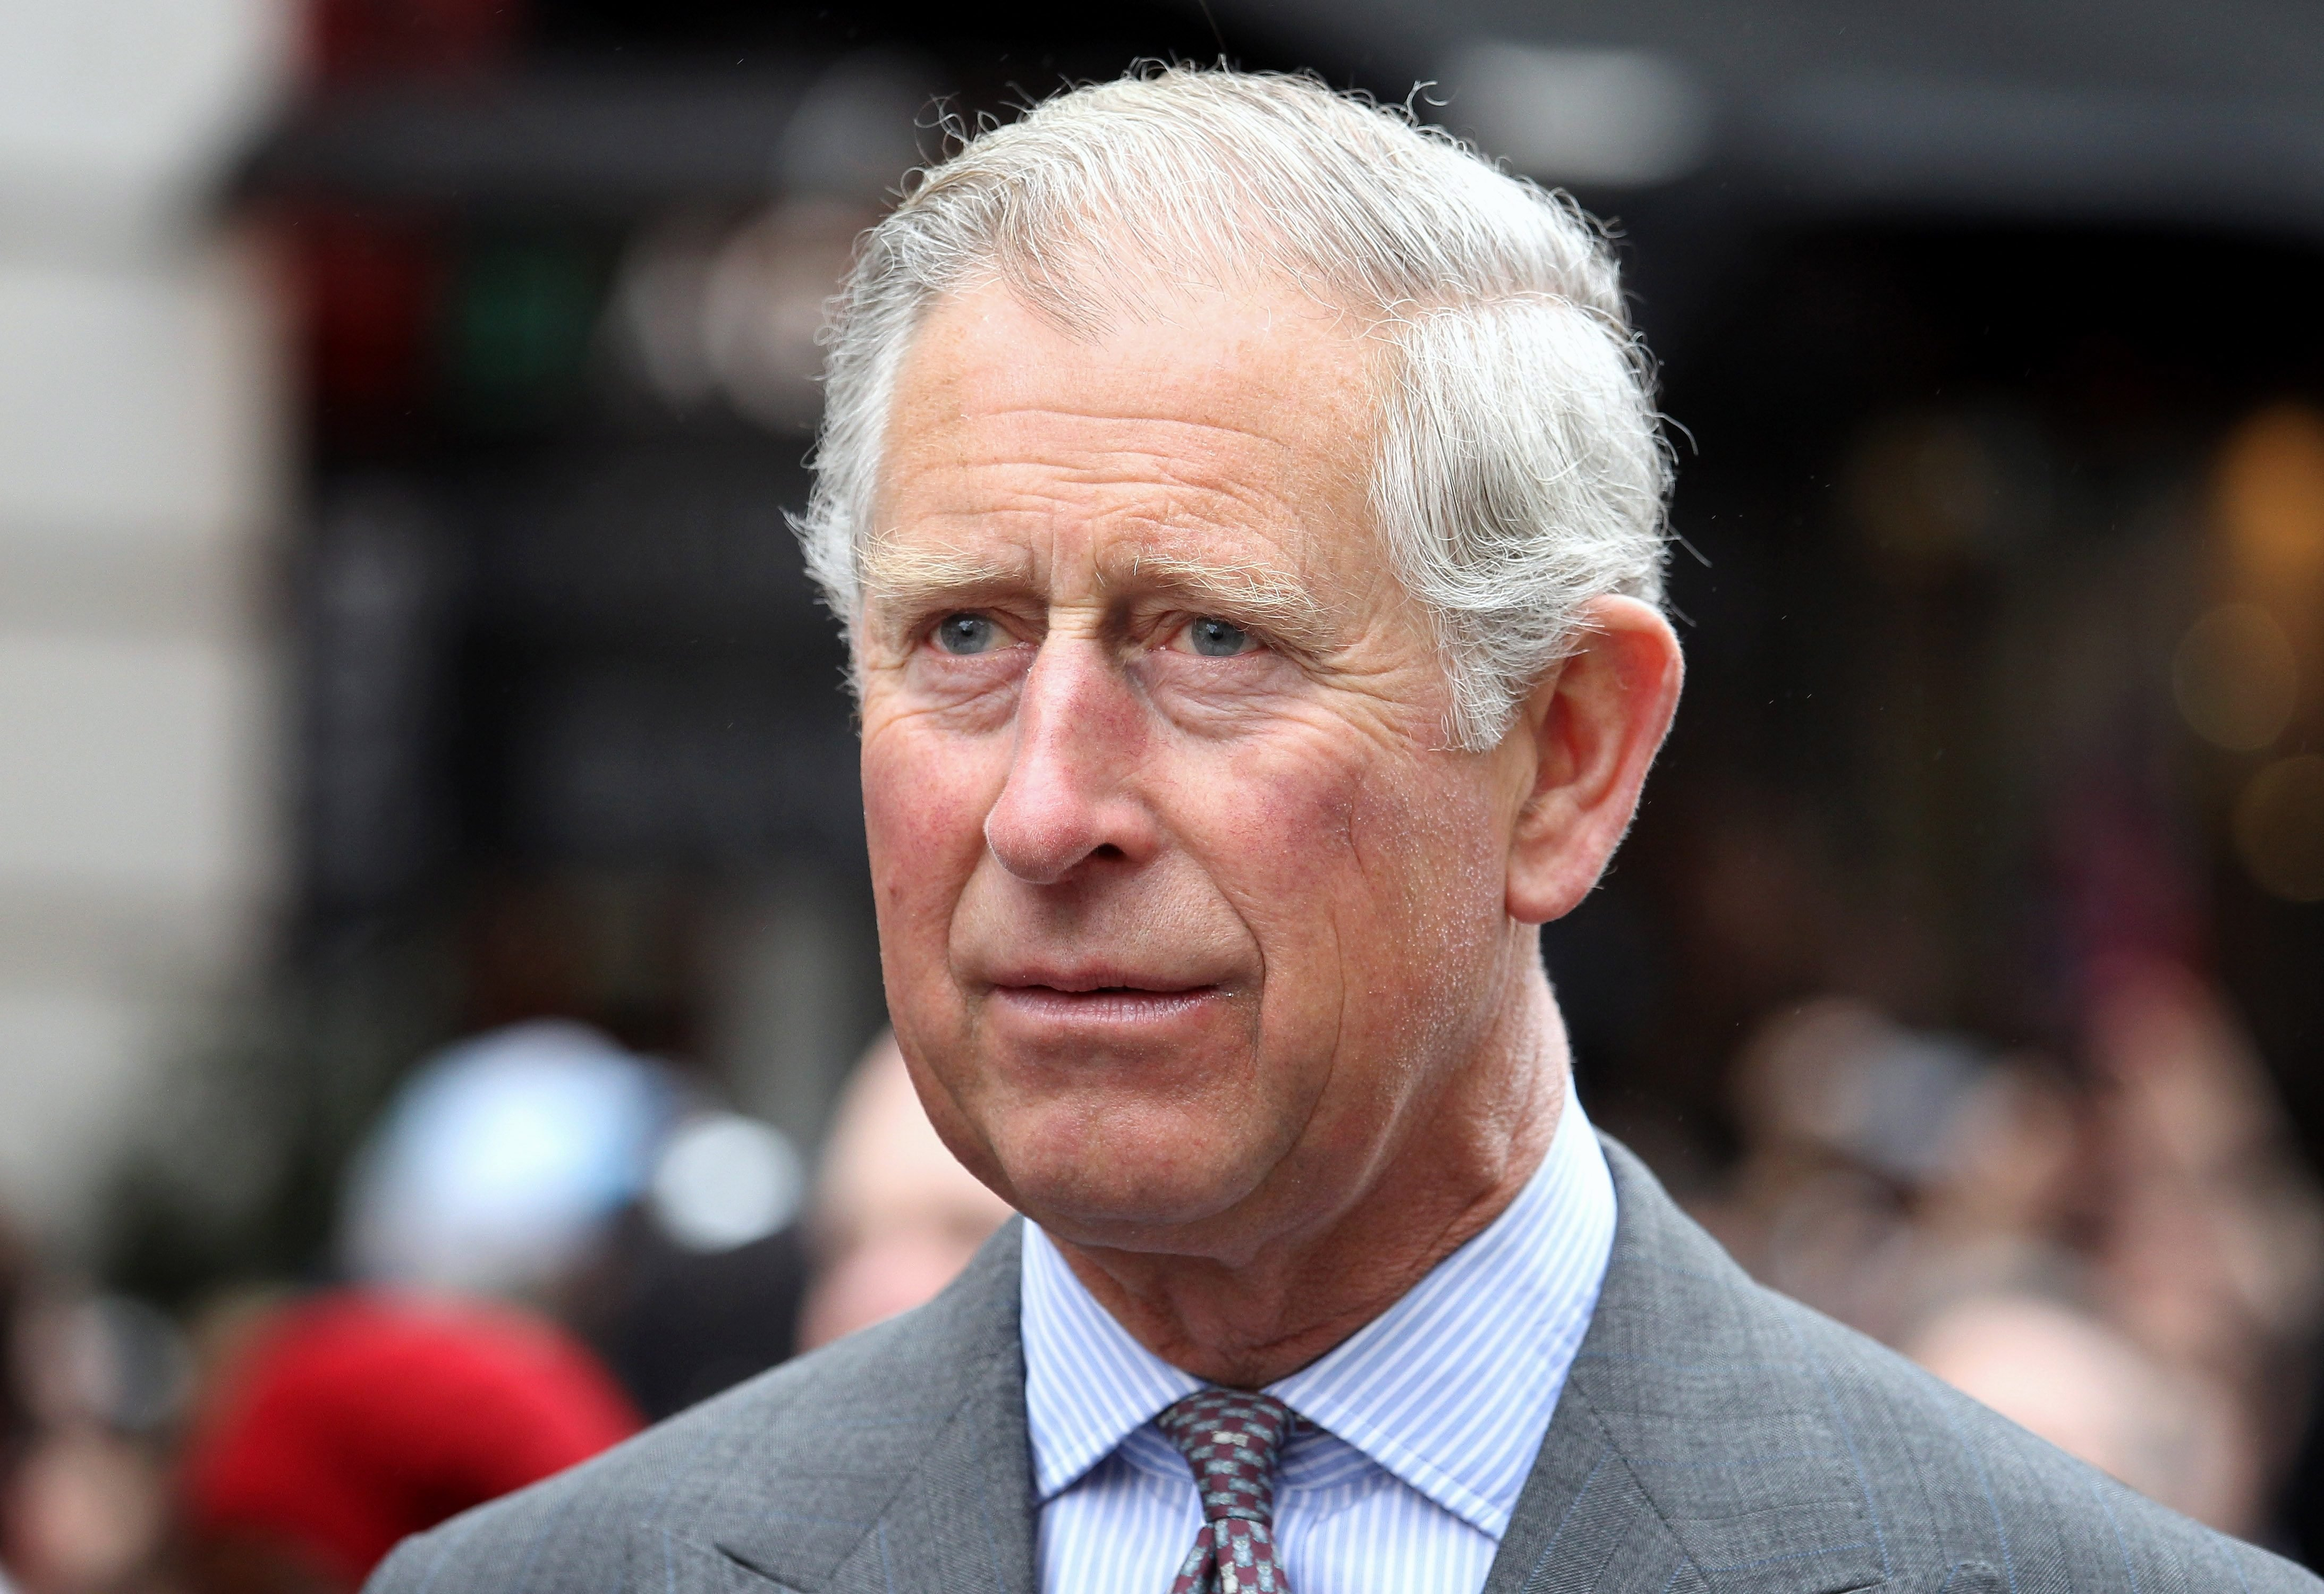 11 Reasons British Citizens Don't Want Prince Charles to Be King